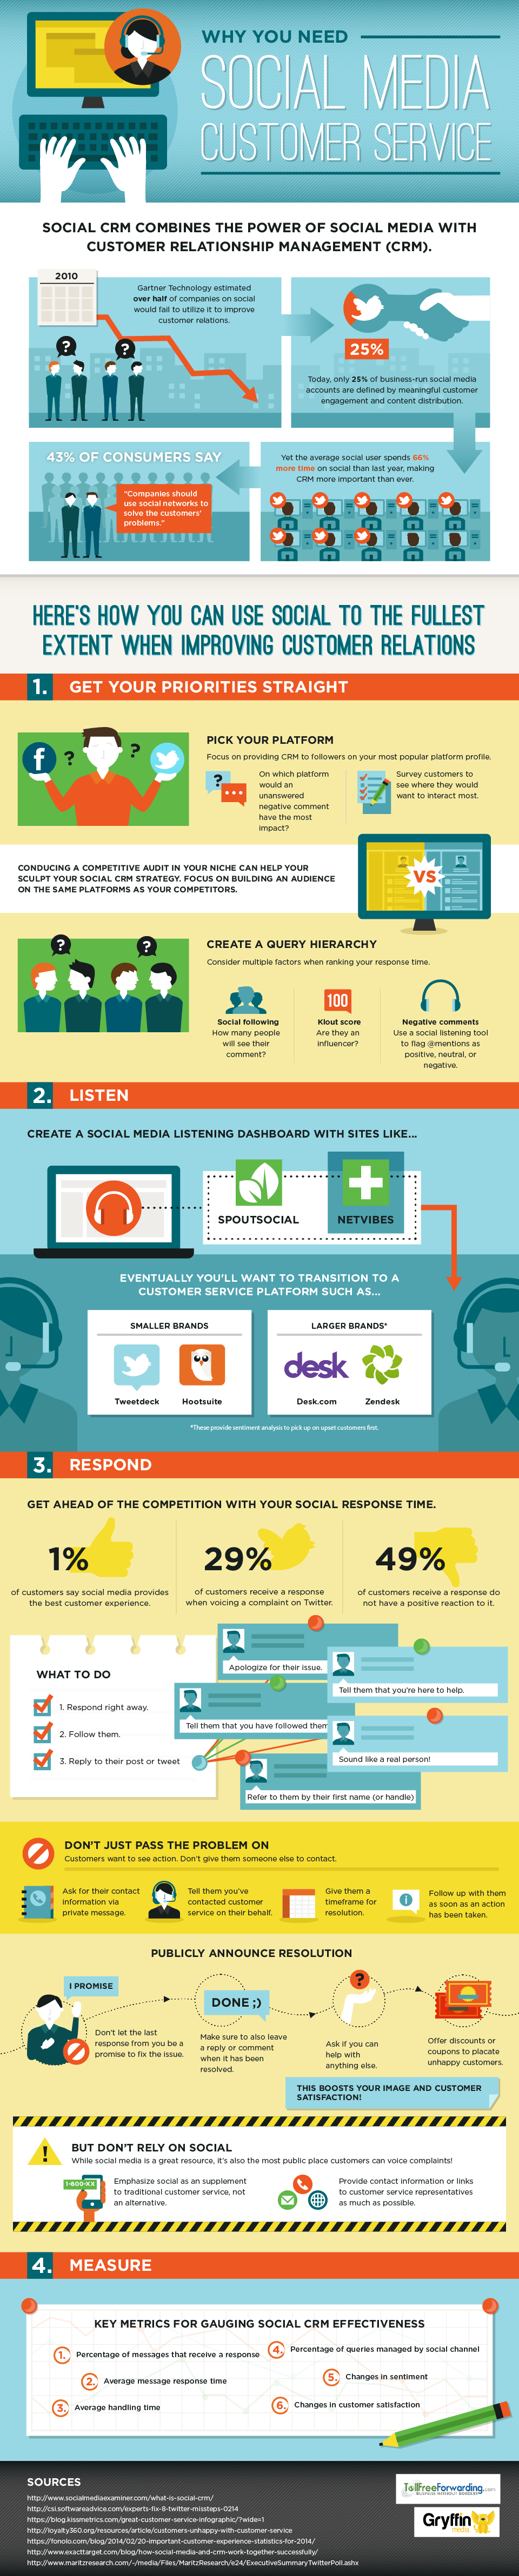 Infographic: Why You Need Social Media Customer Service